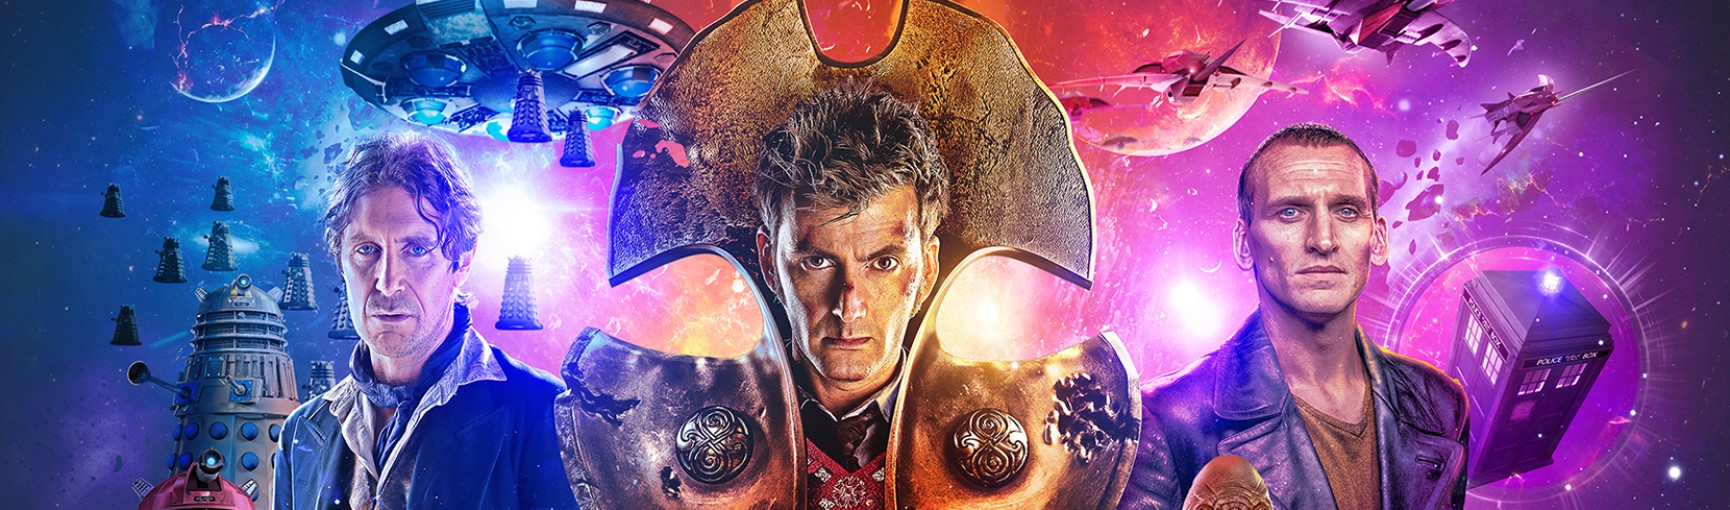 Time Lord Victorious banner featuring the Eighth, Nineth and Tenth Doctors